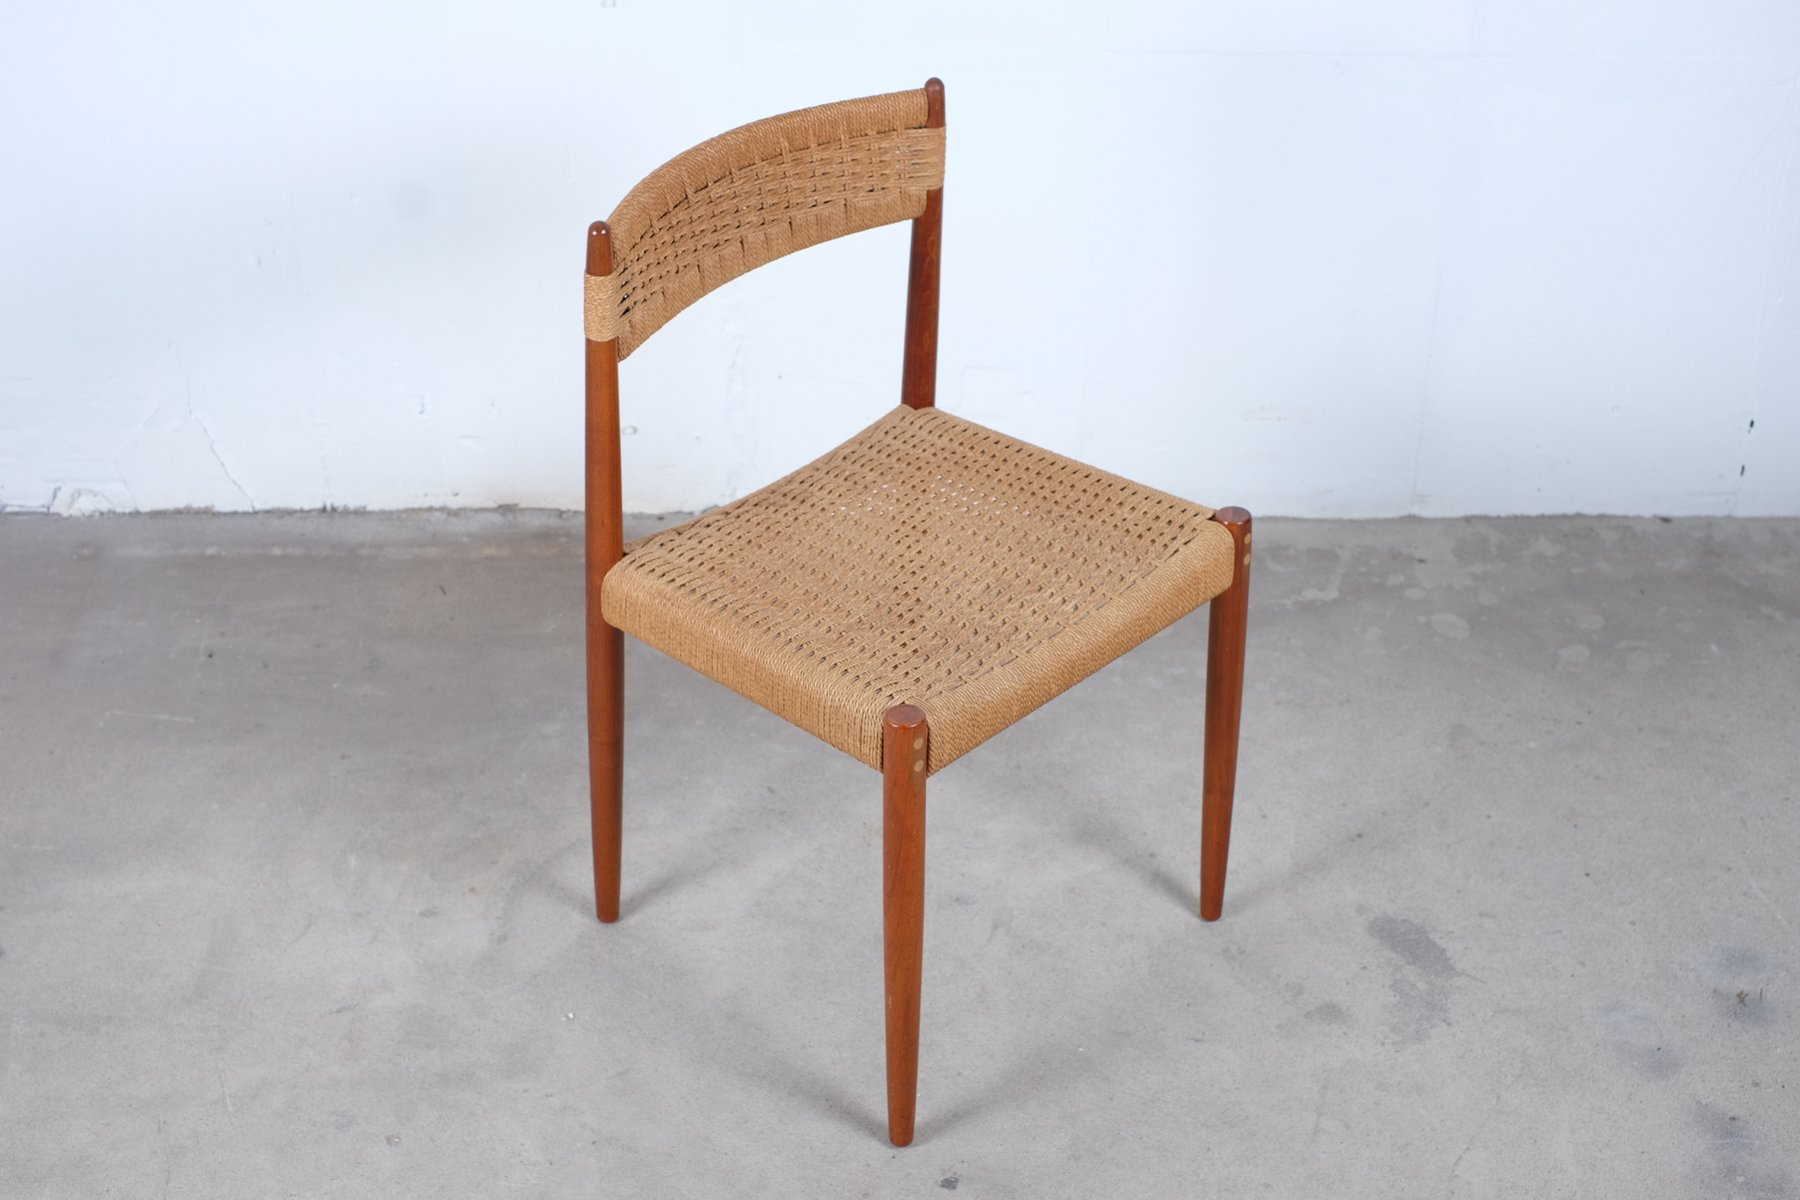 teak dining room chairs for sale england chair and a half glider vintage danish in set of 4 at